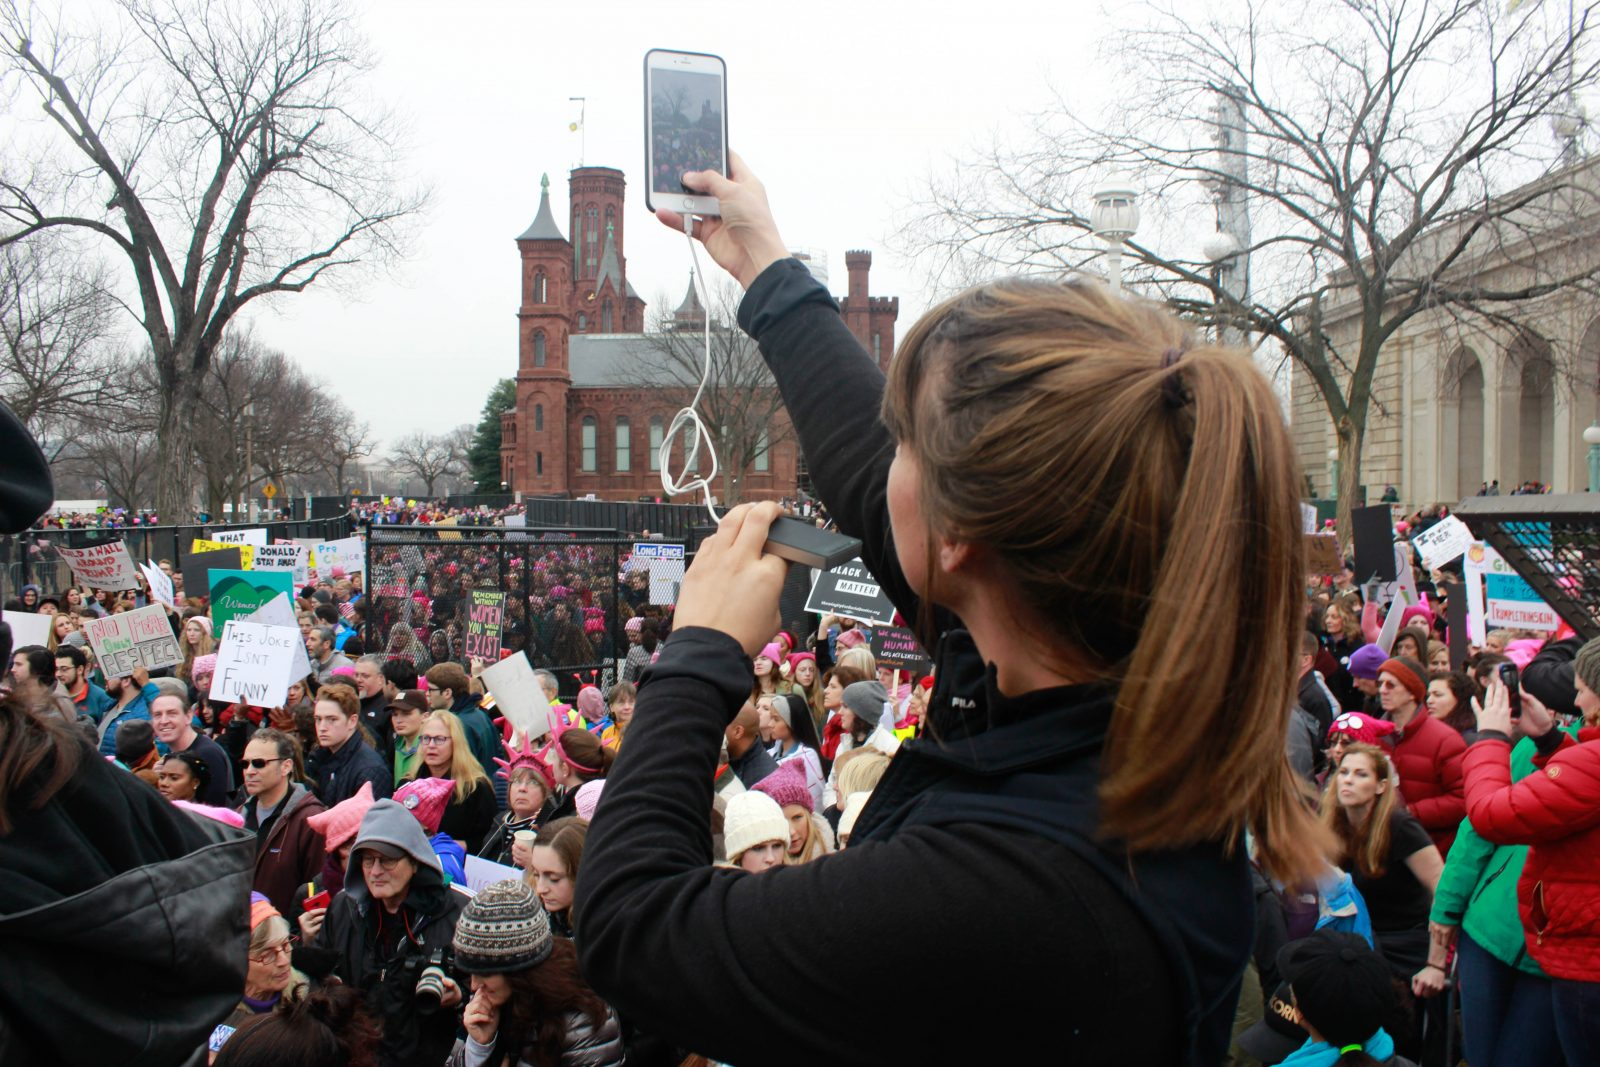 Women`s March & Protest against Donald Trump in Washington DC